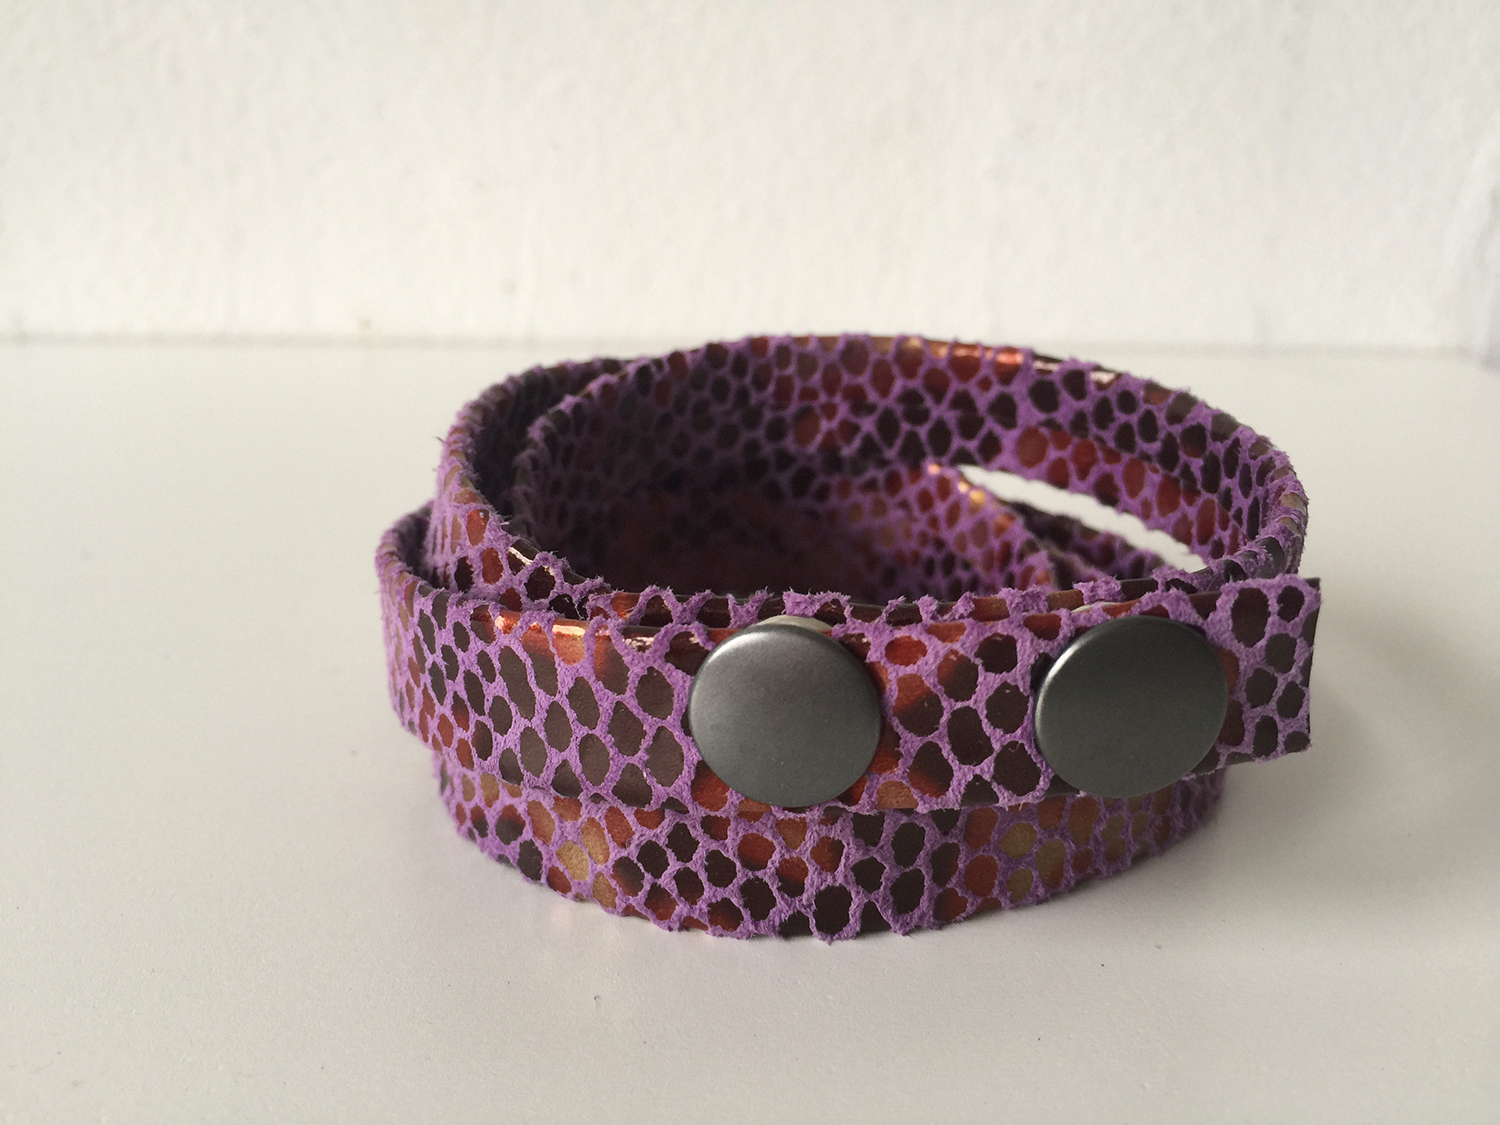 Soft snake skin lavender leather wrap bracelet (available in single, double and triple wrap options) with two antique pewter snaps